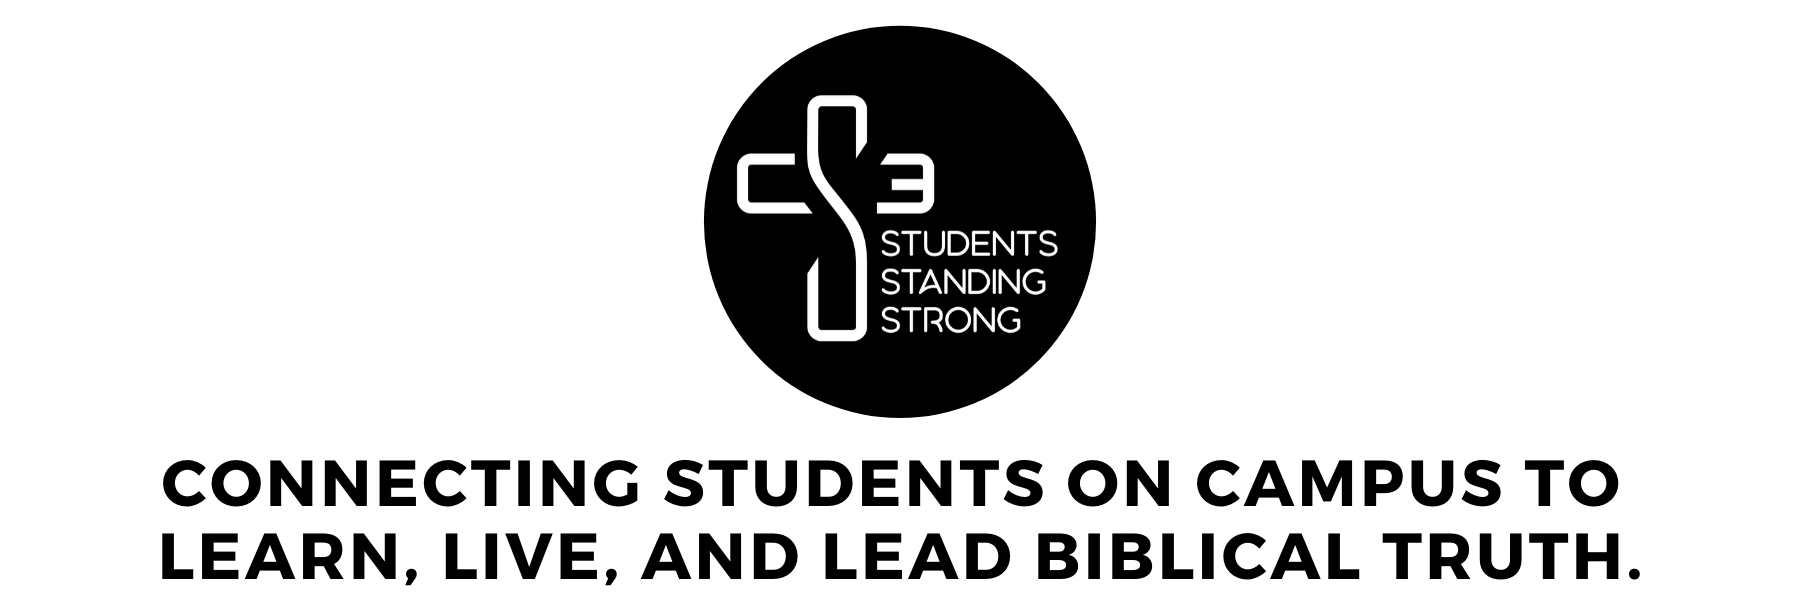 Copy of Students Standing Strong (5)